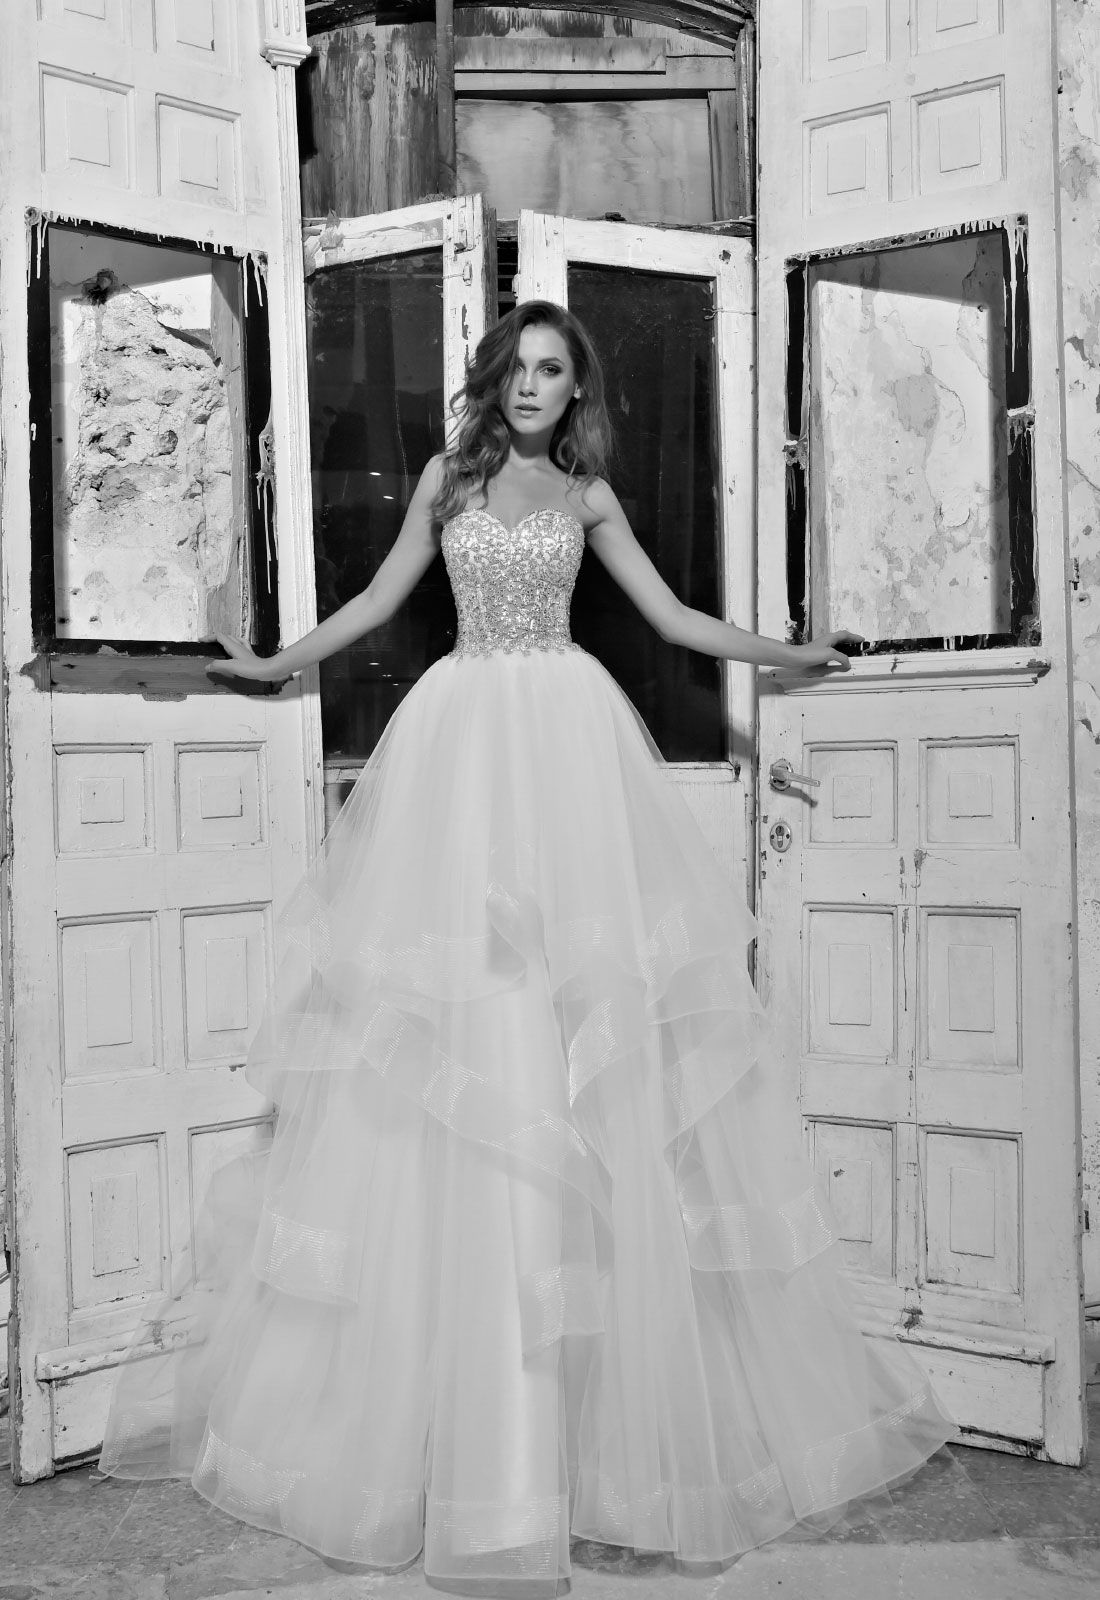 Pin by Taylor on dress Wedding dresses Wedding Wedding gowns